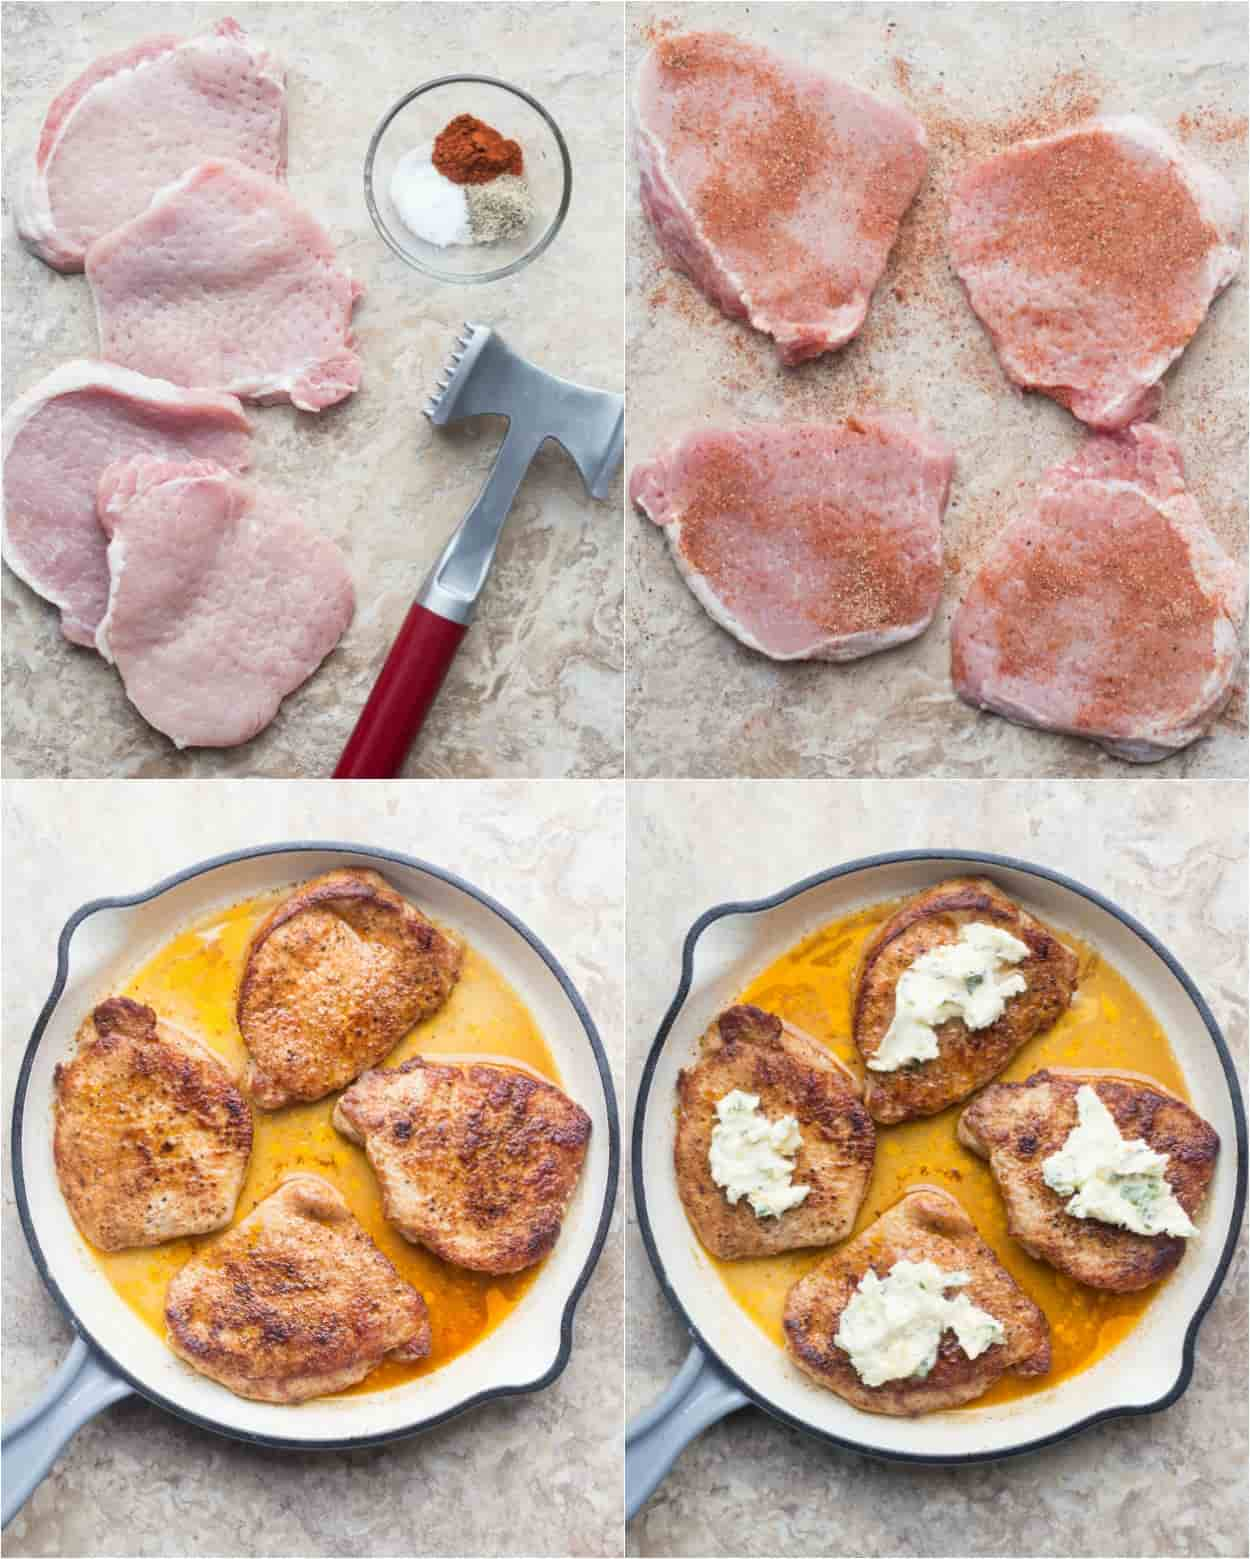 How to cook pork chops. How to prepare, seasone and cook the porkchops.